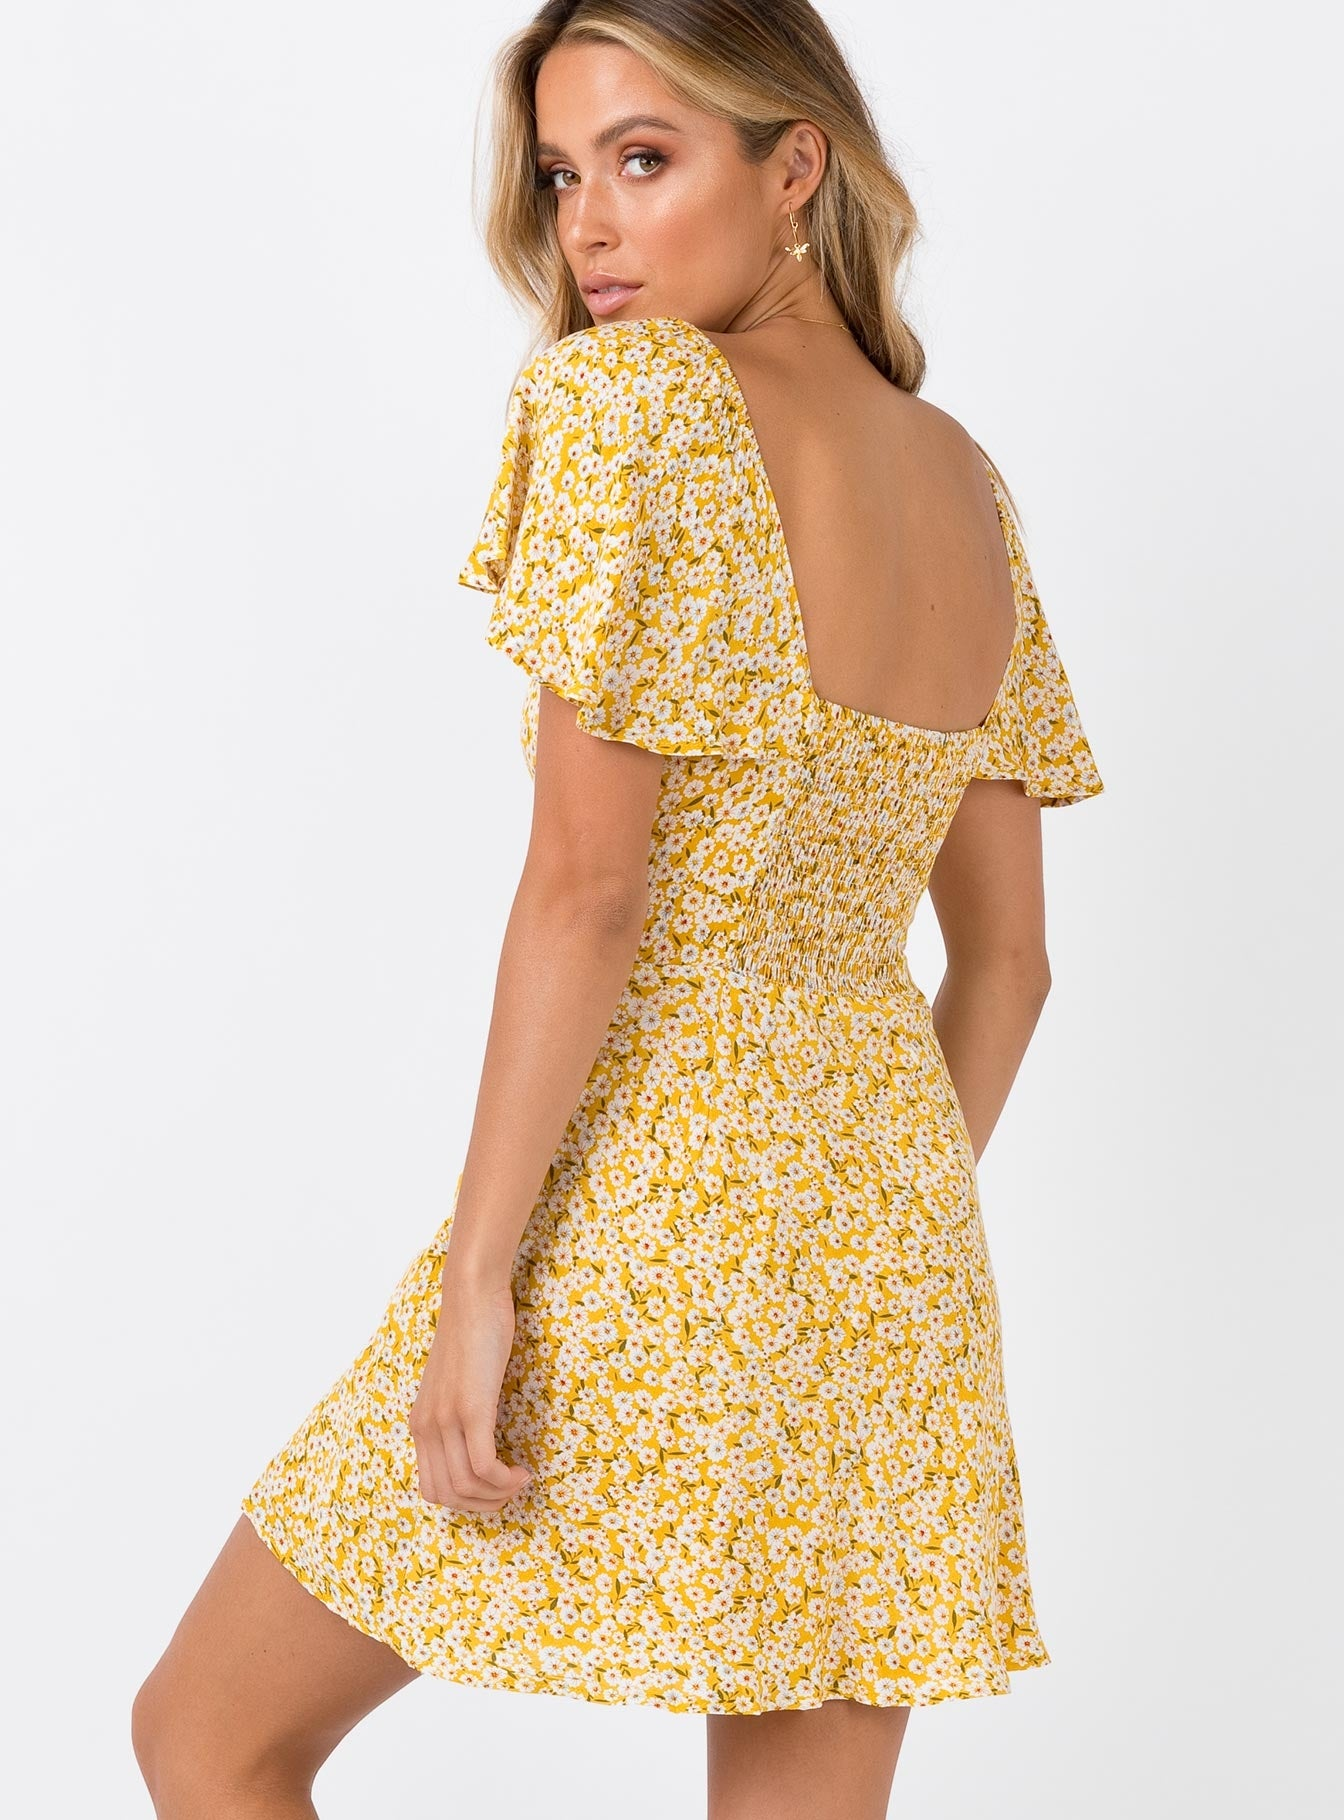 Just A Lover Mini Dress Yellow